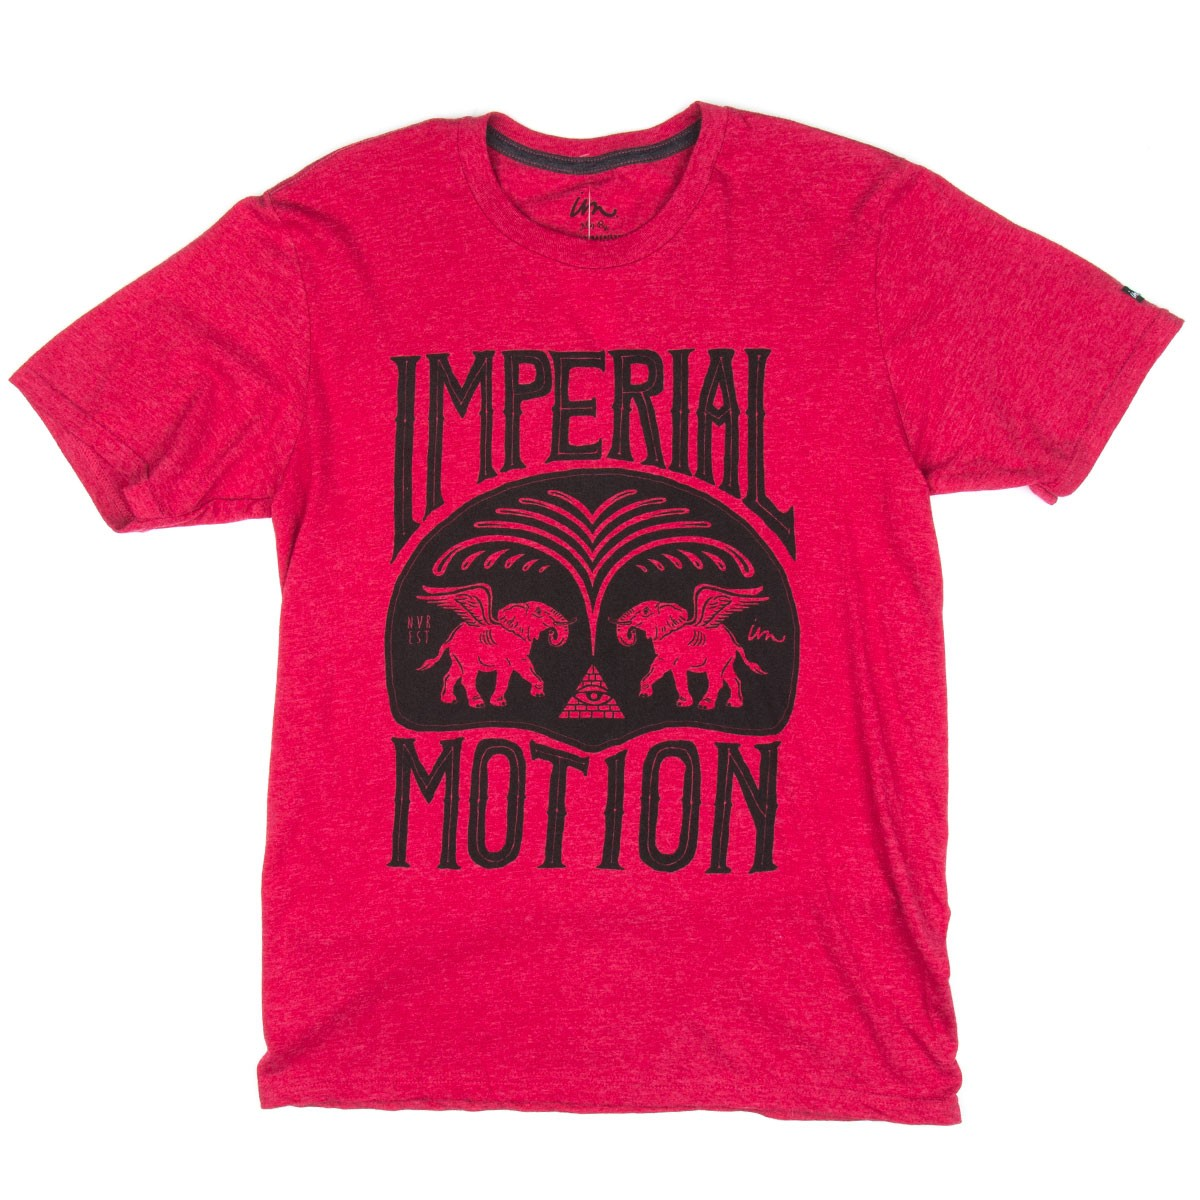 Imperial Motion Fountain T-Shirt - Red Heather